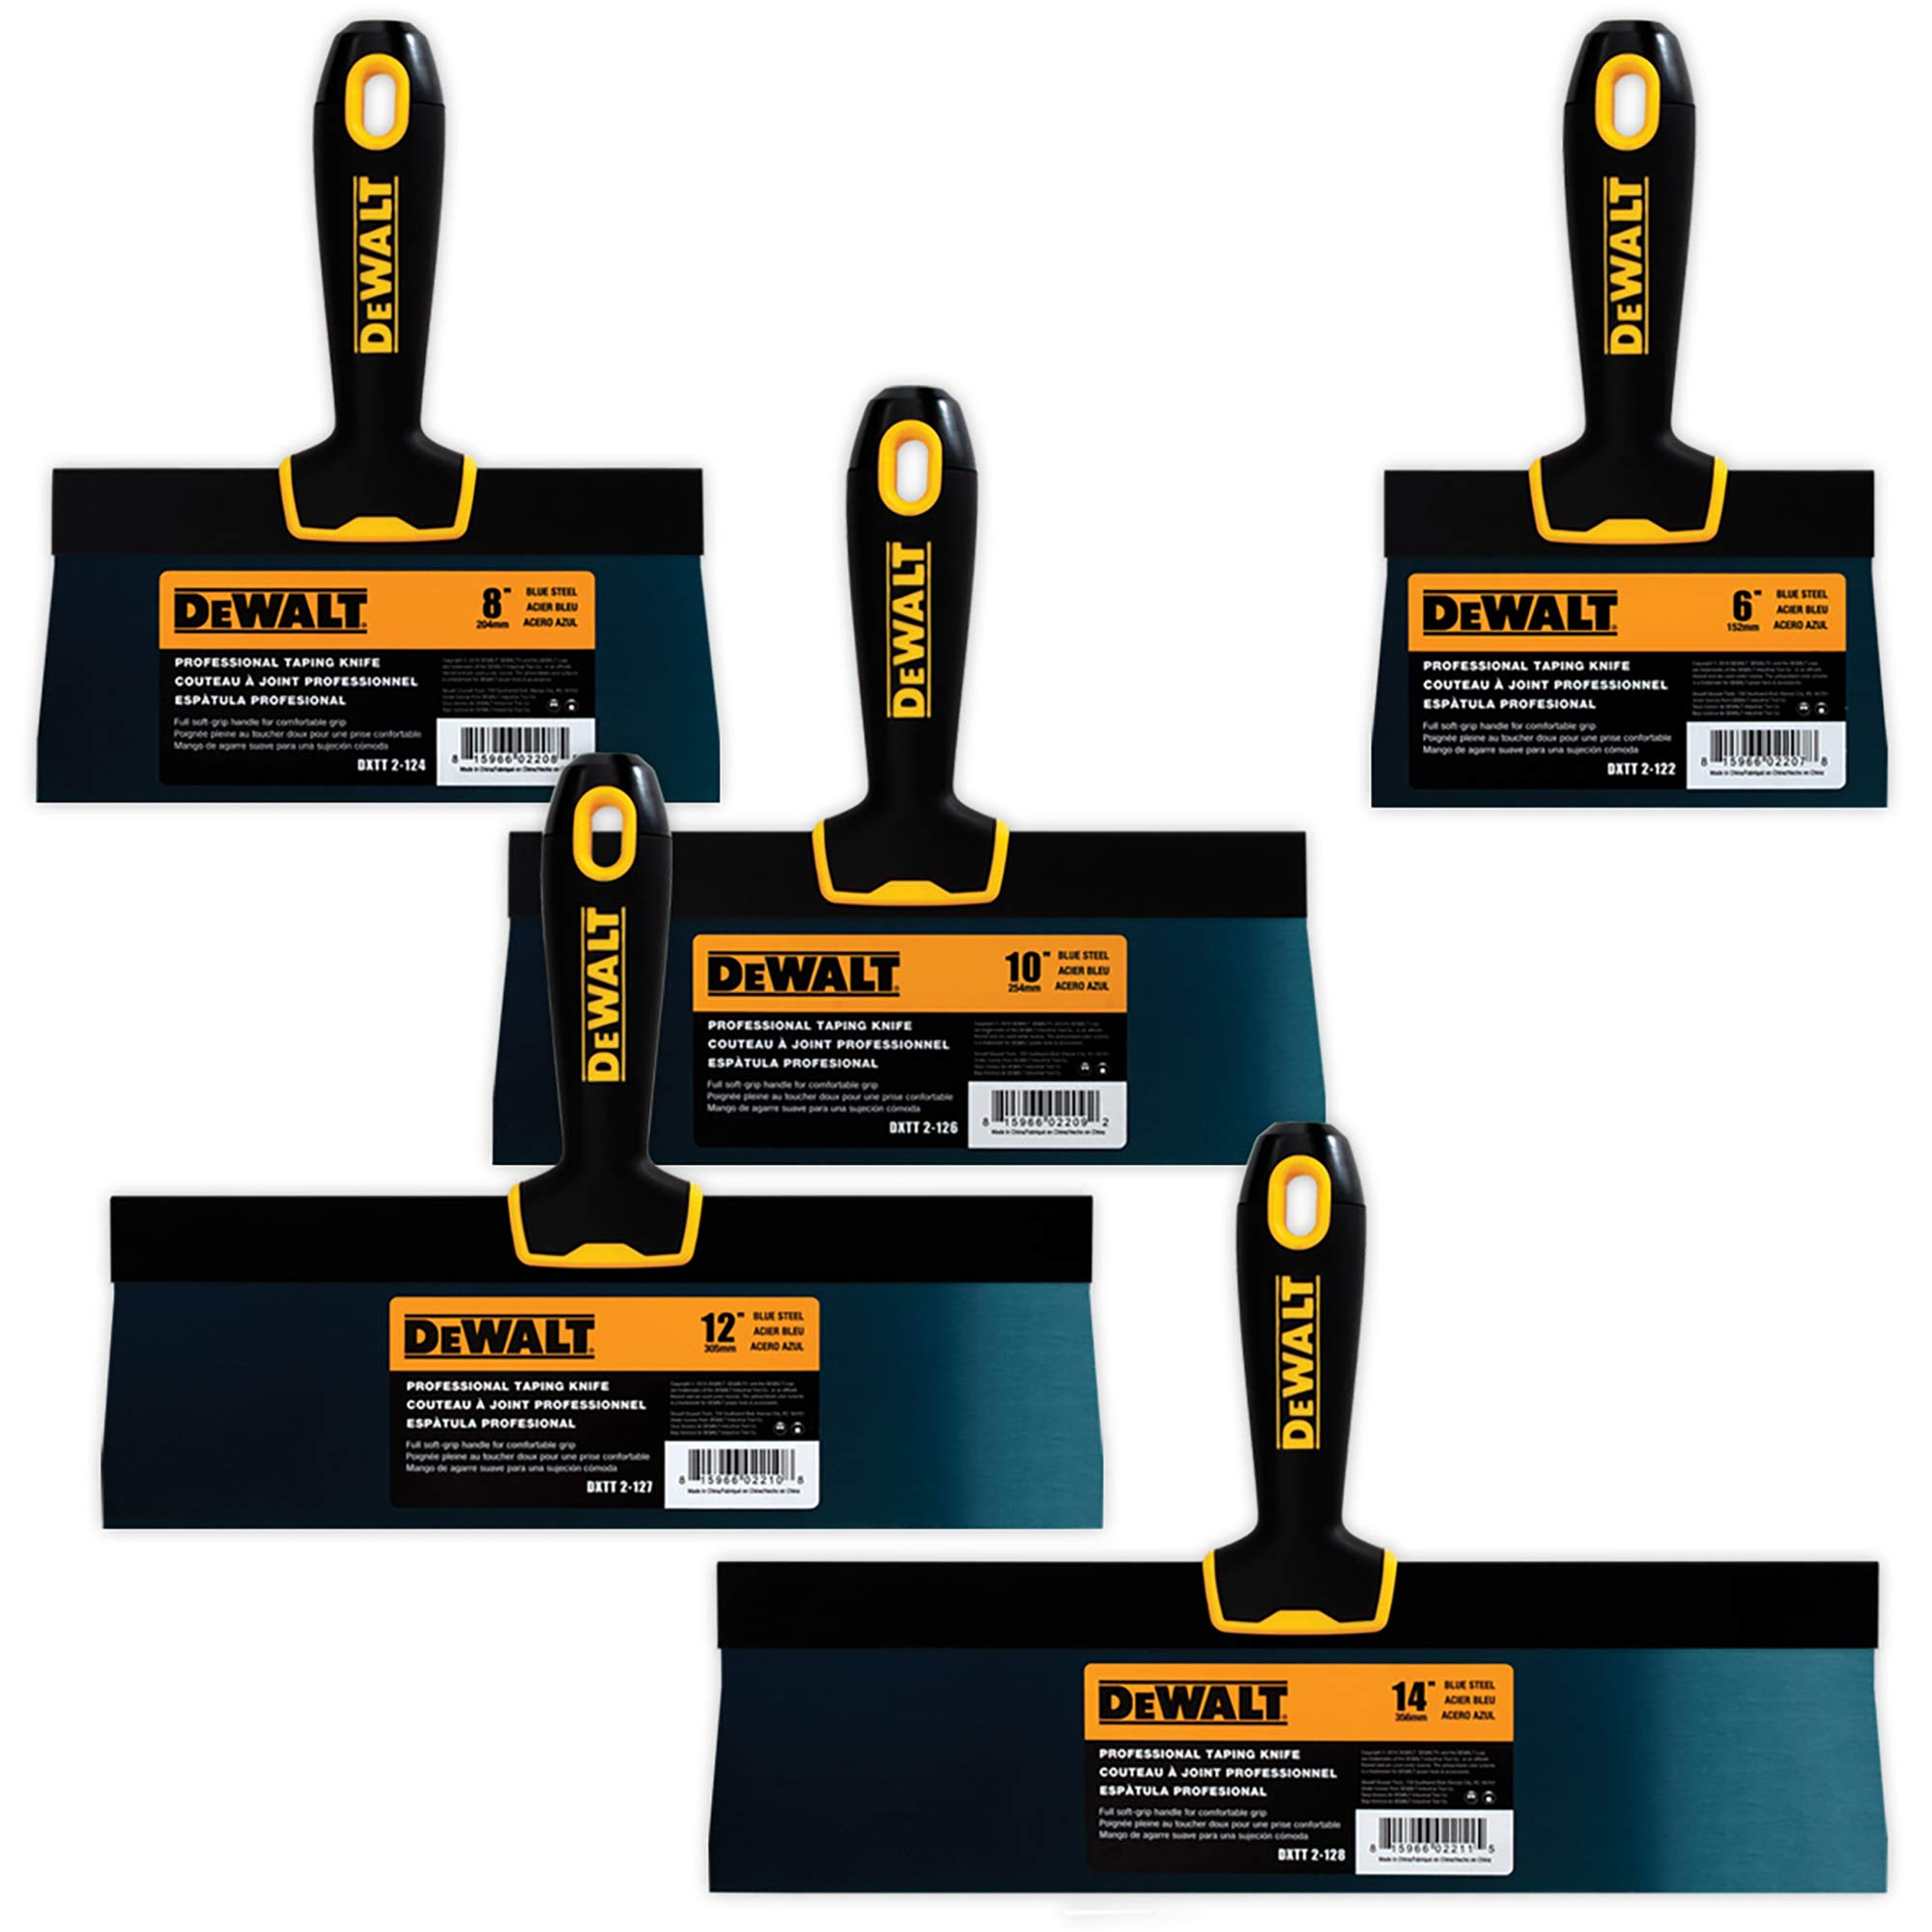 DEWALT Blue Steel Taping Knife 4-Pack | 8/10/12/14-Inches + FREE 6-Inch BONUS | Soft Grip Handles| DXTT-3-162